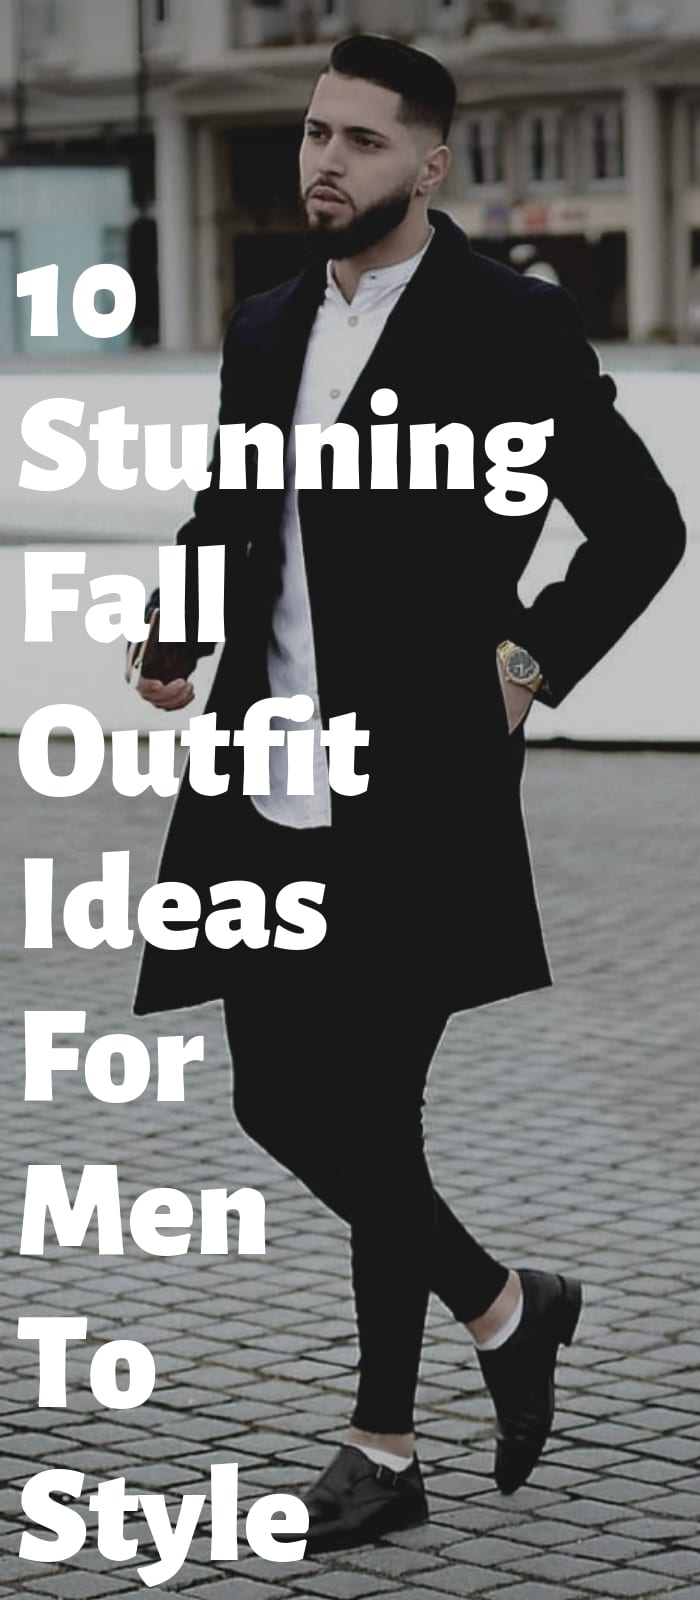 10 Stunning Fall Outfit Ideas For Men To Style!